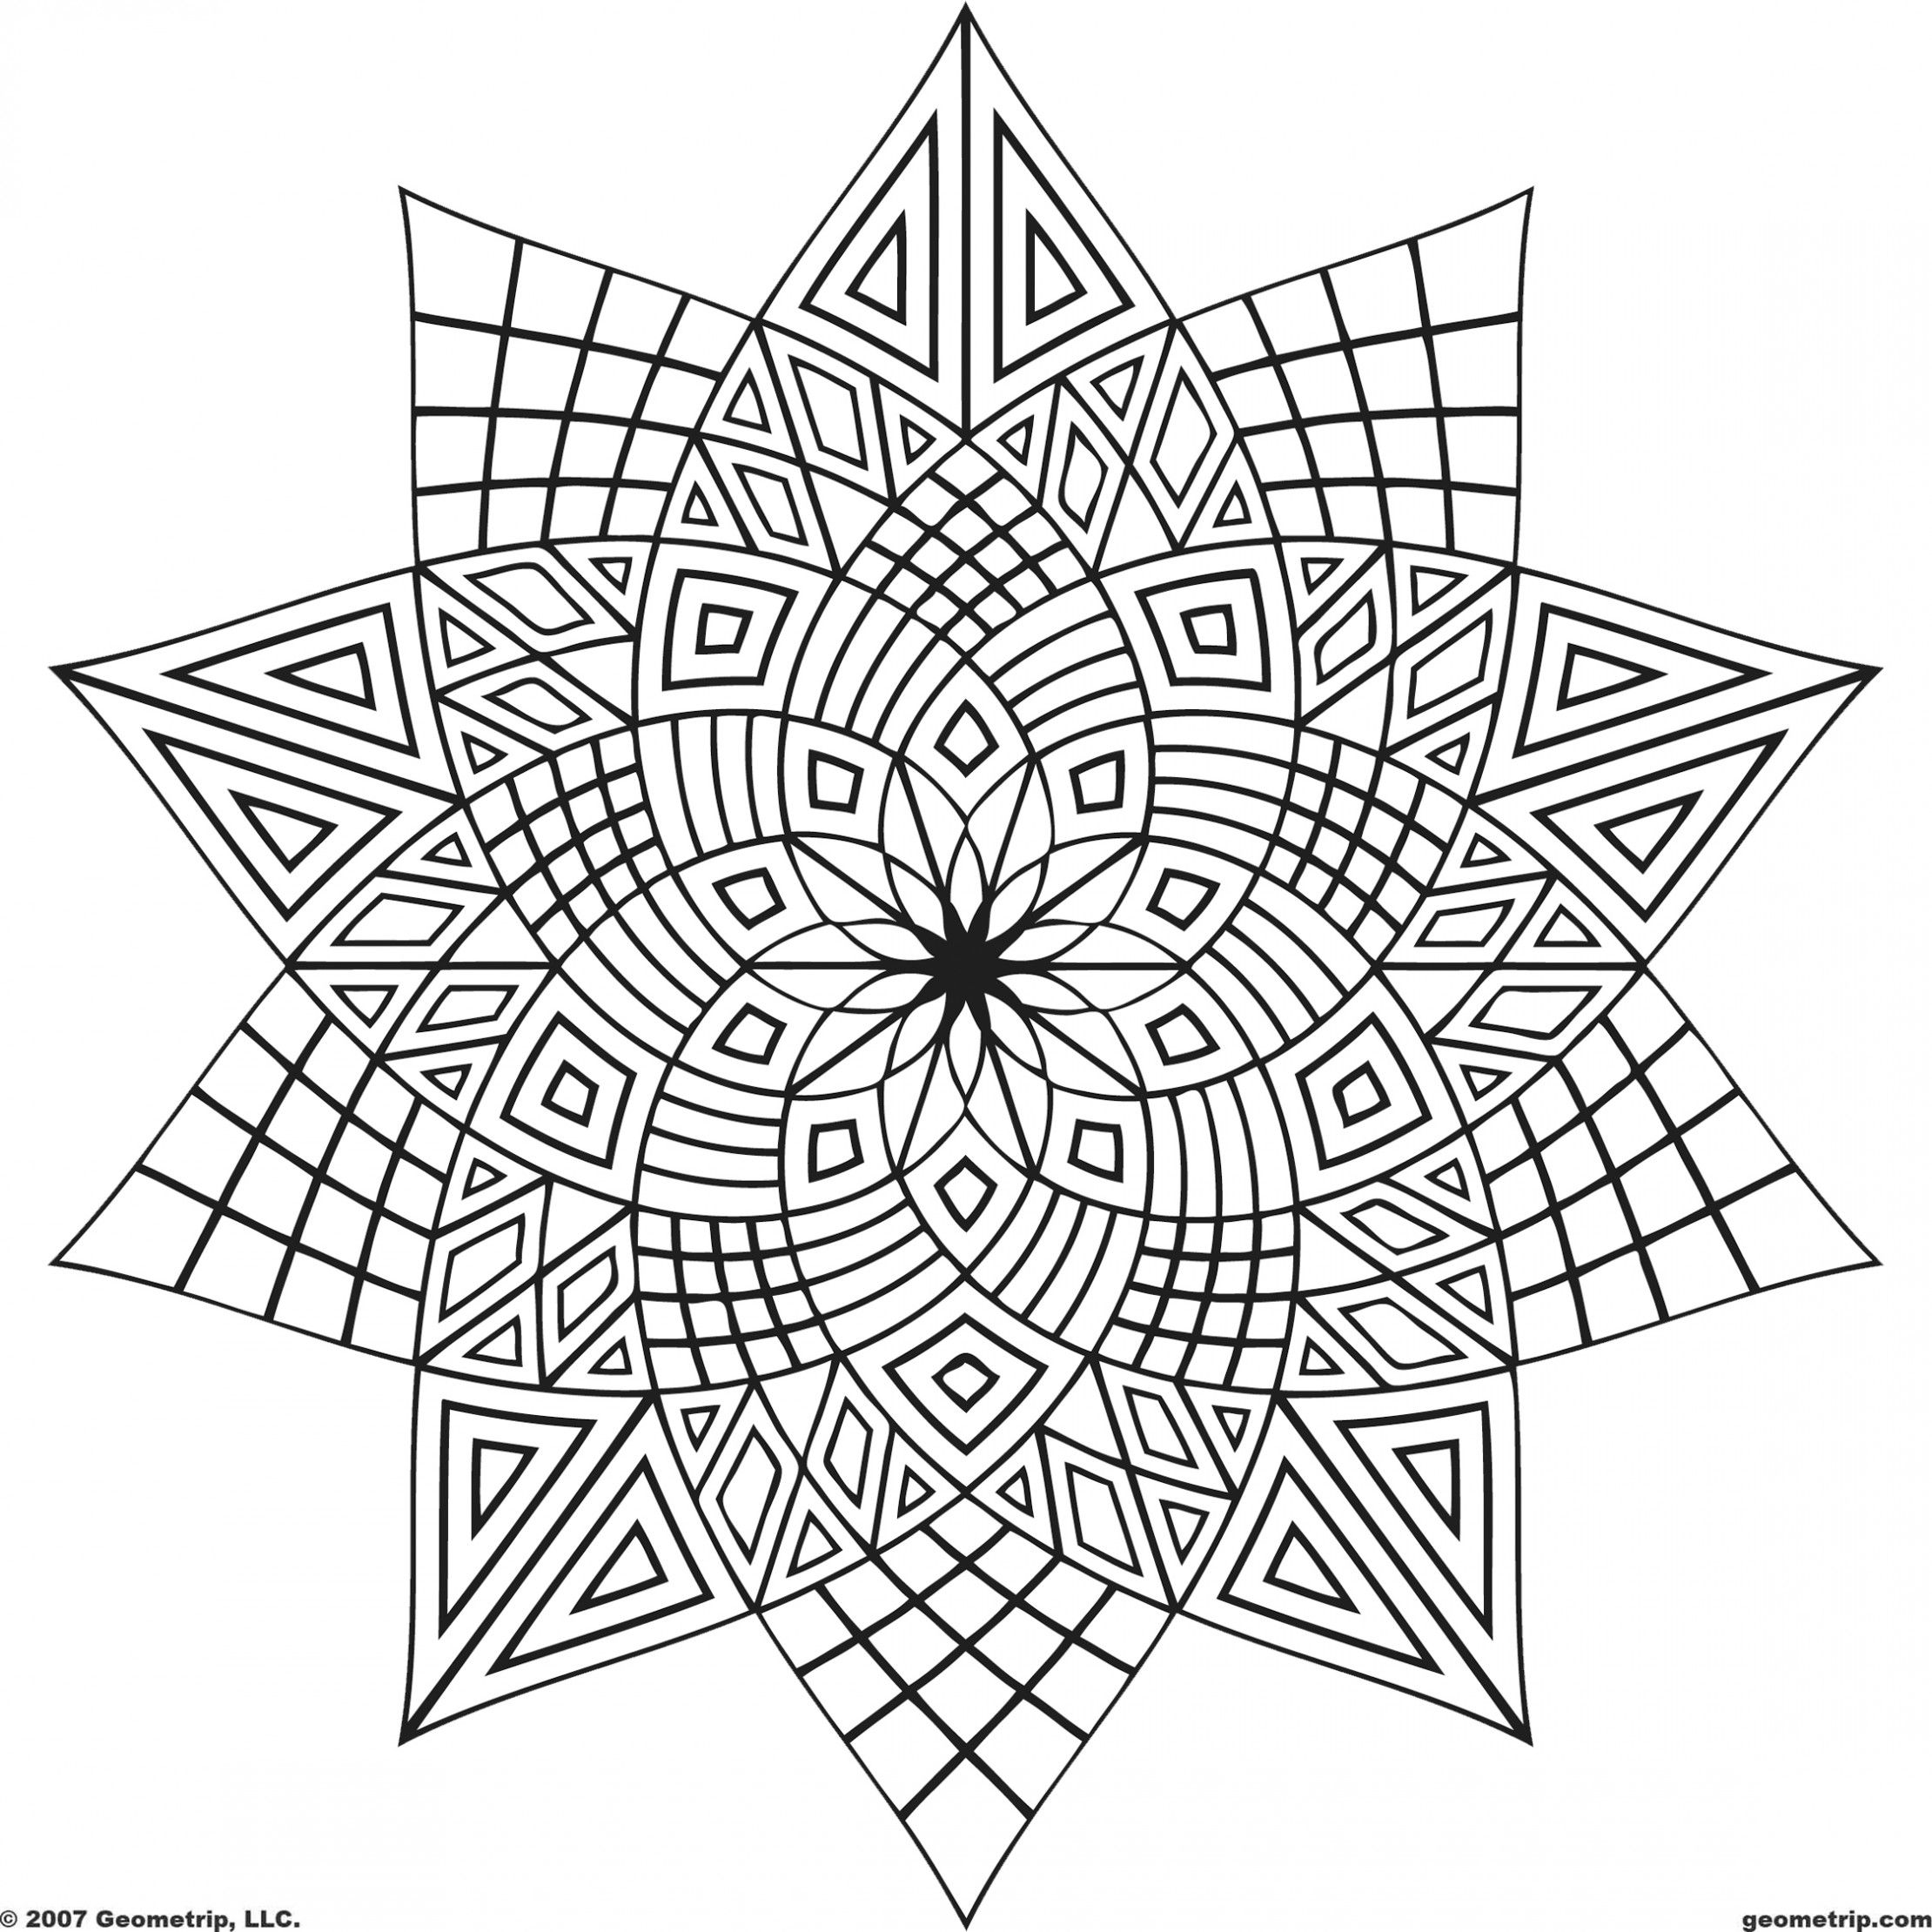 Free downloadable coloring pages for adults - Find This Pin And More On Coloring Designs By Facha0530 Mandala 0001 Free Printable Adults Coloring Pages